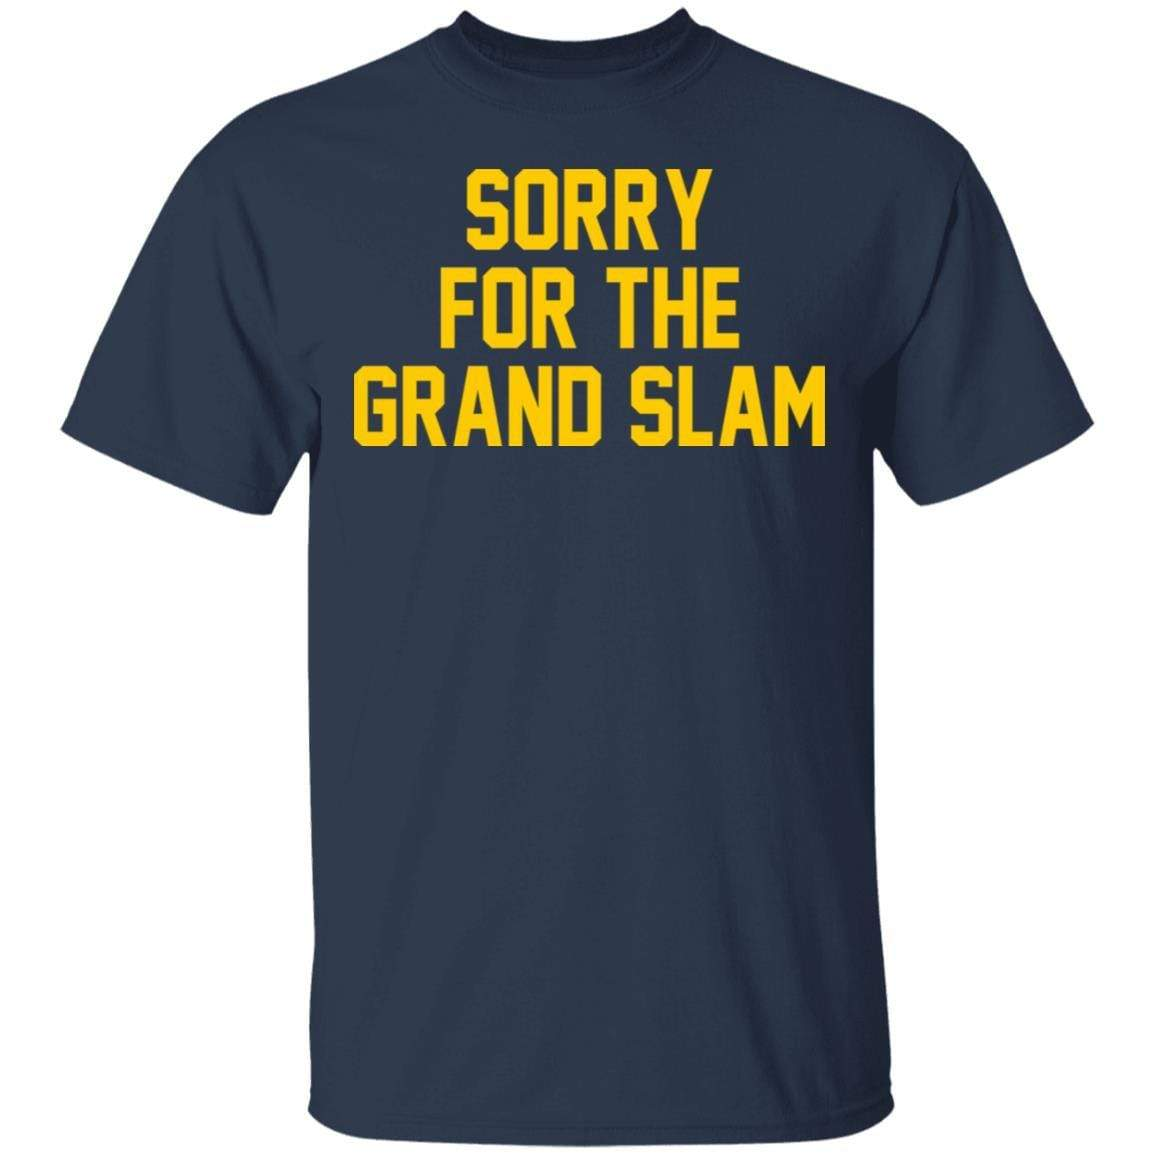 Sorry For The Grand Slam T-Shirts, Hoodies 1049-9966-88445020-48248 - Tee Ript